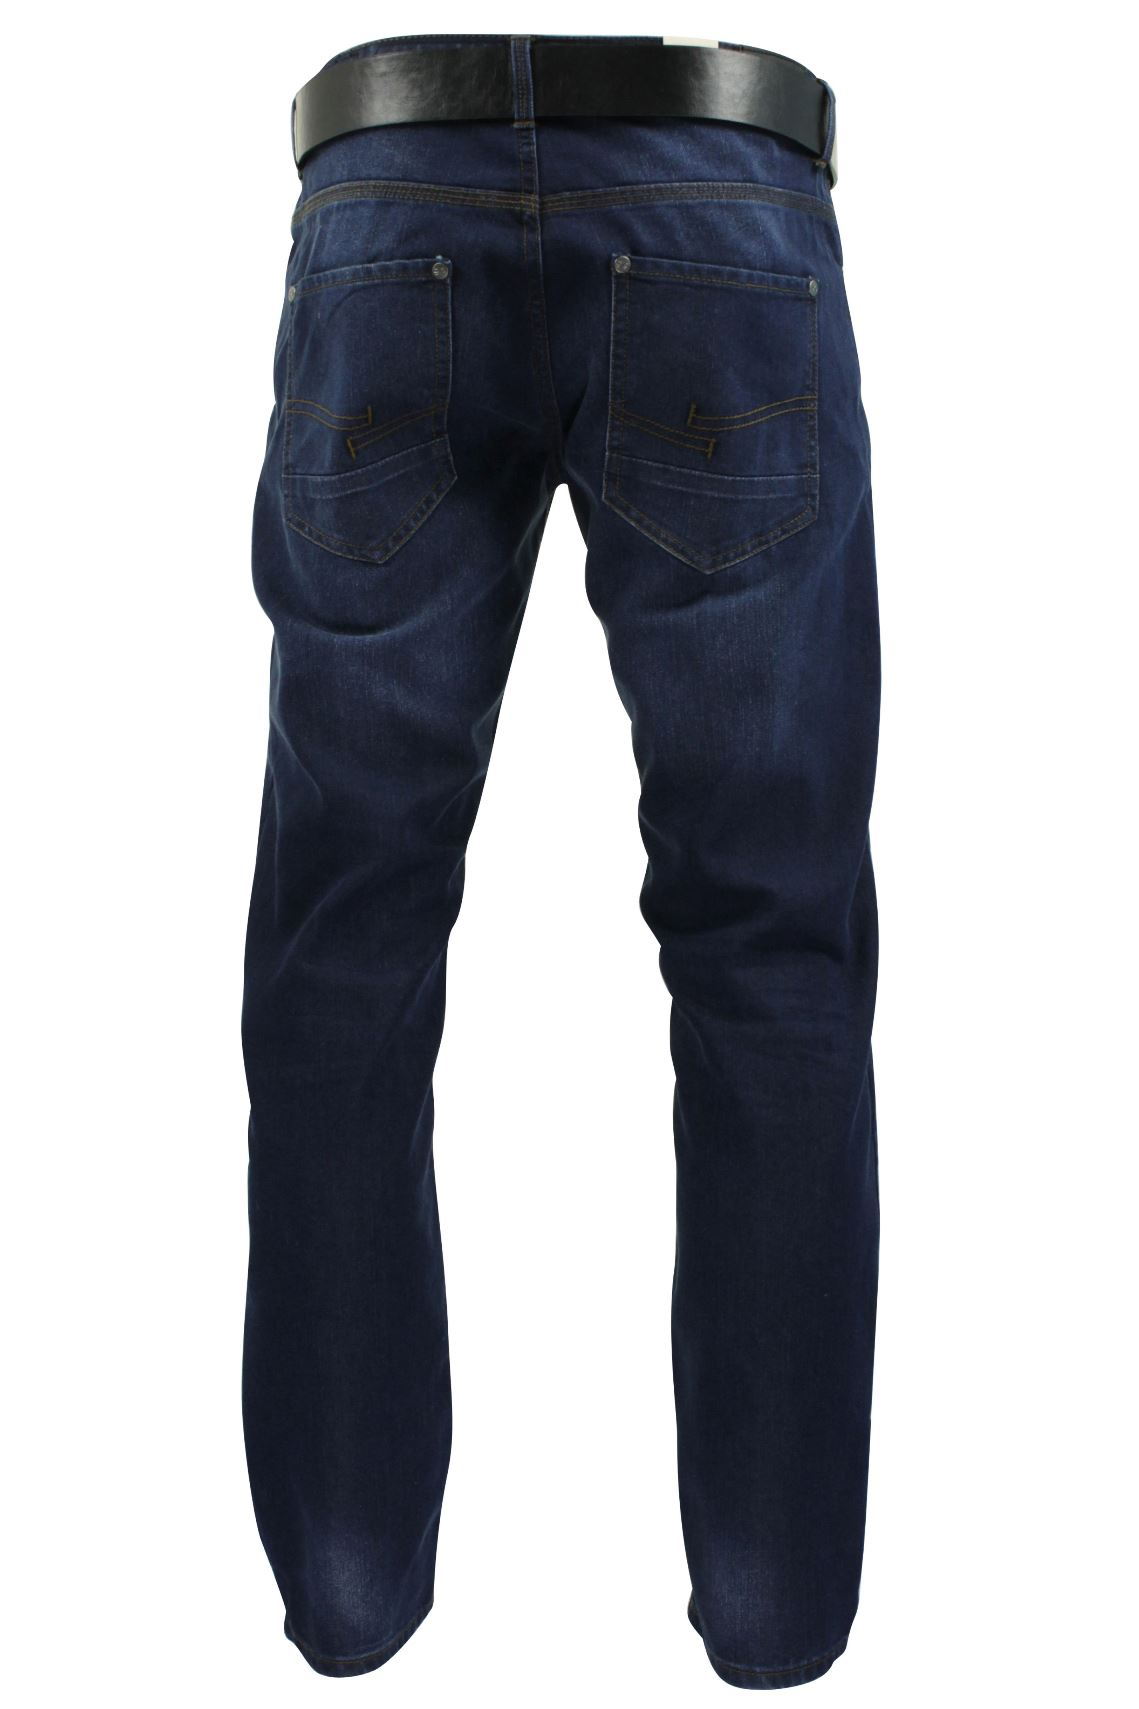 Mens Jeans by Crosshatch 'Wayne' Slim Fit-3